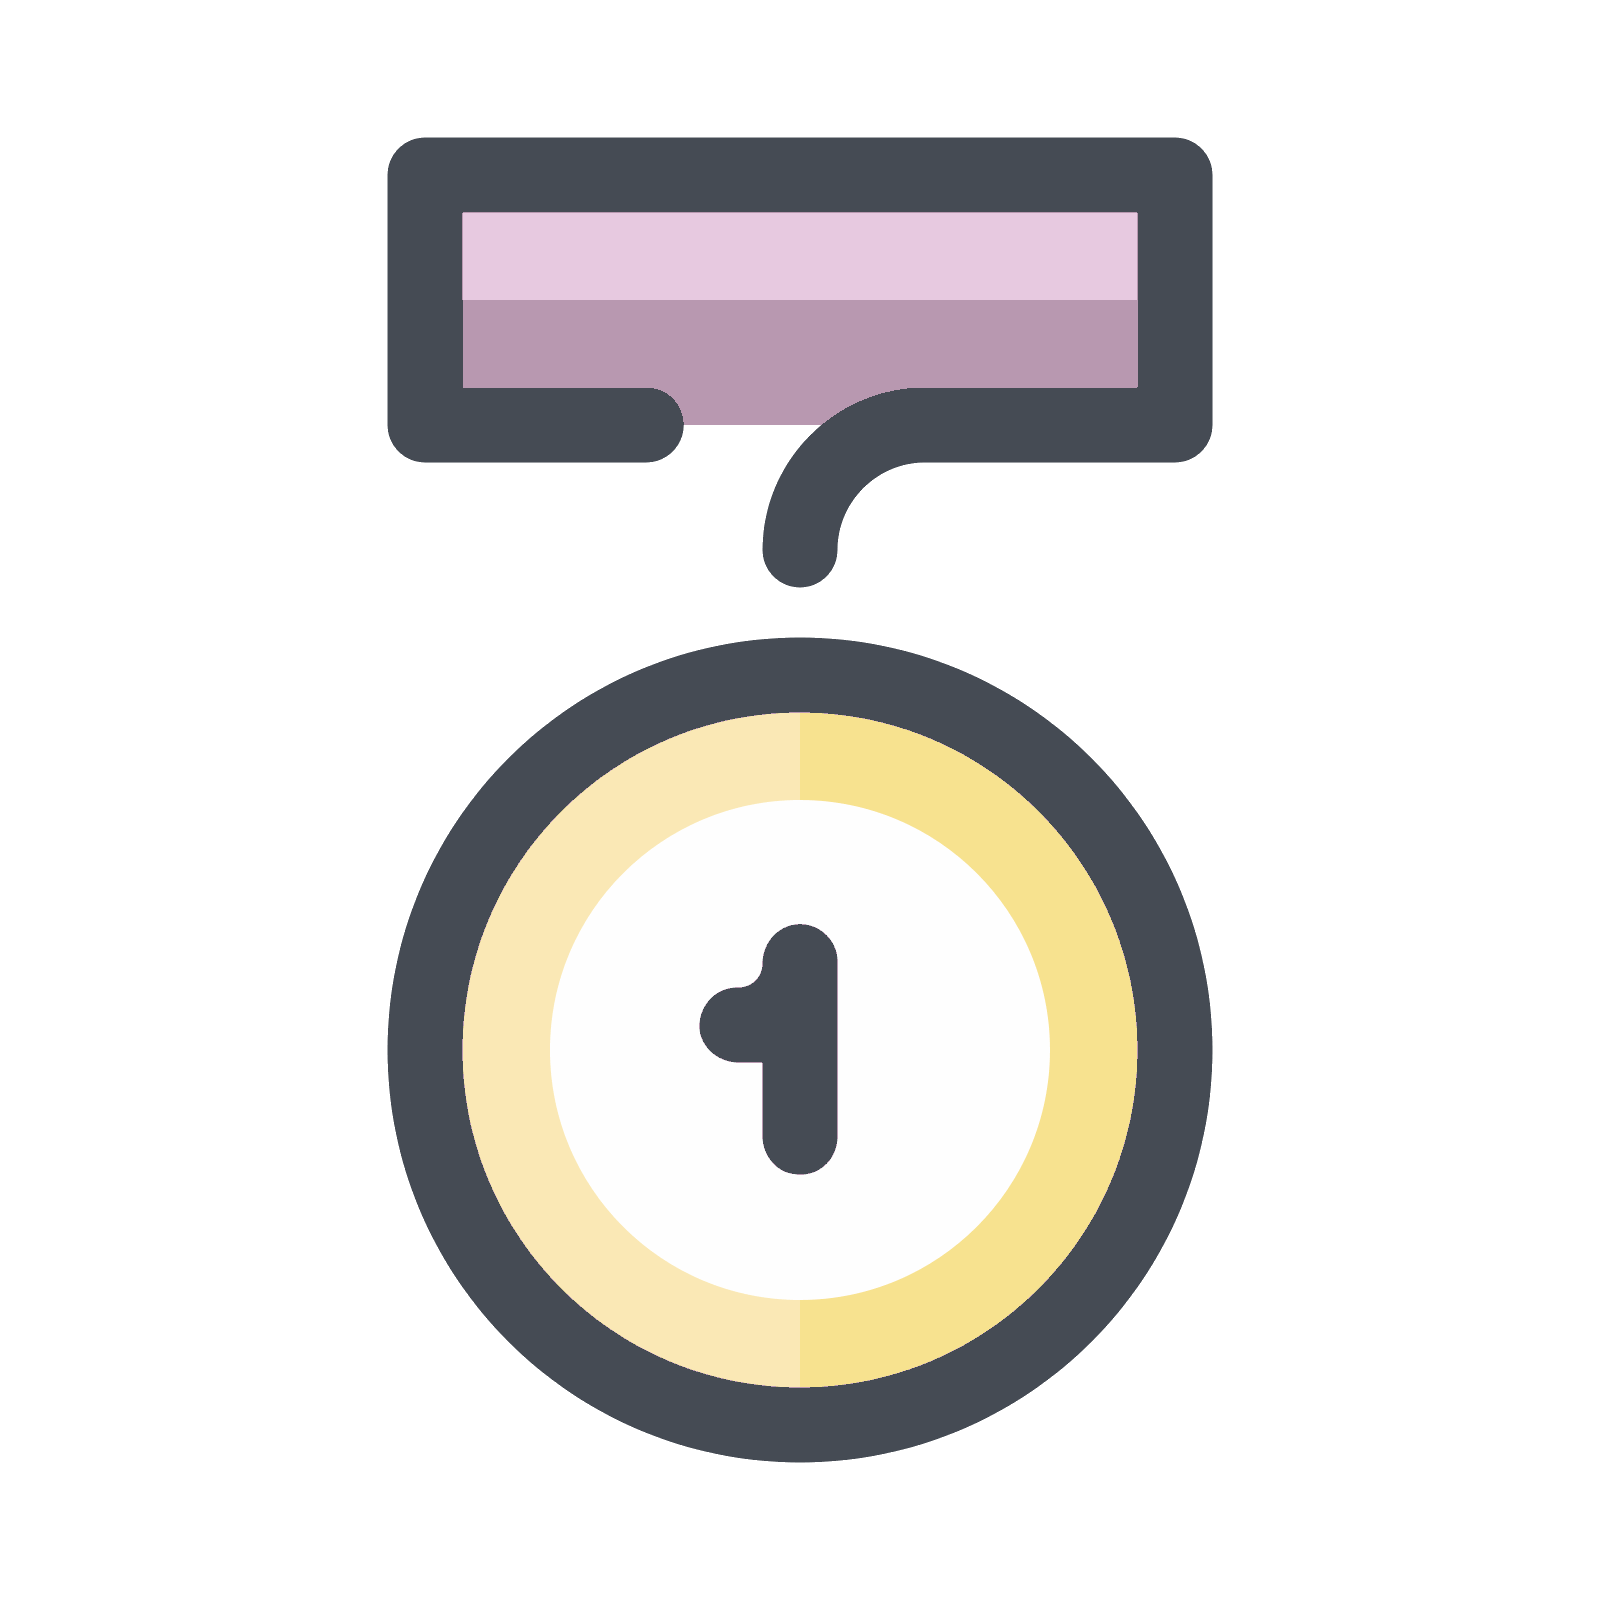 Medallion vector circle. Medal first place icon